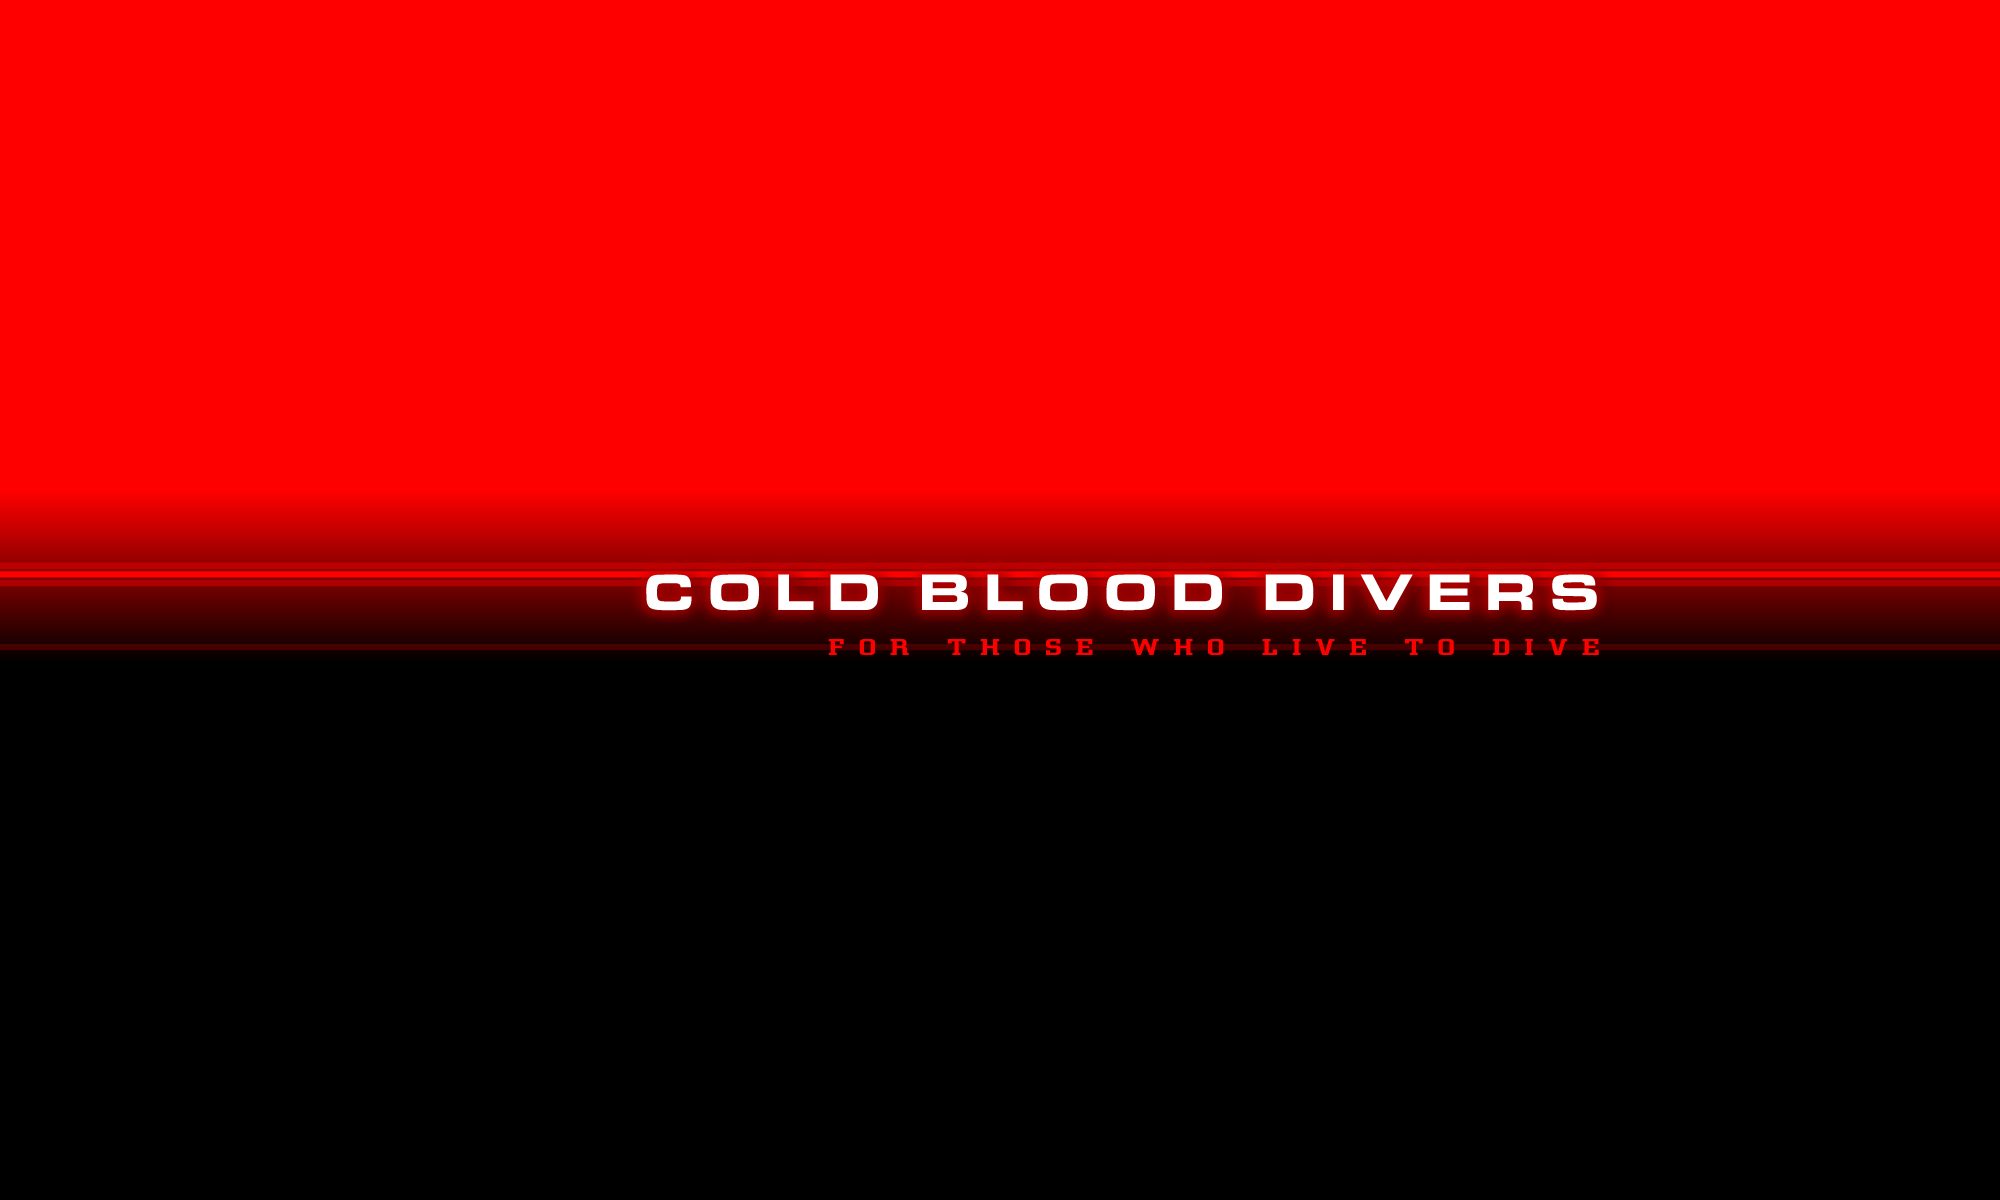 Cold Blood Divers